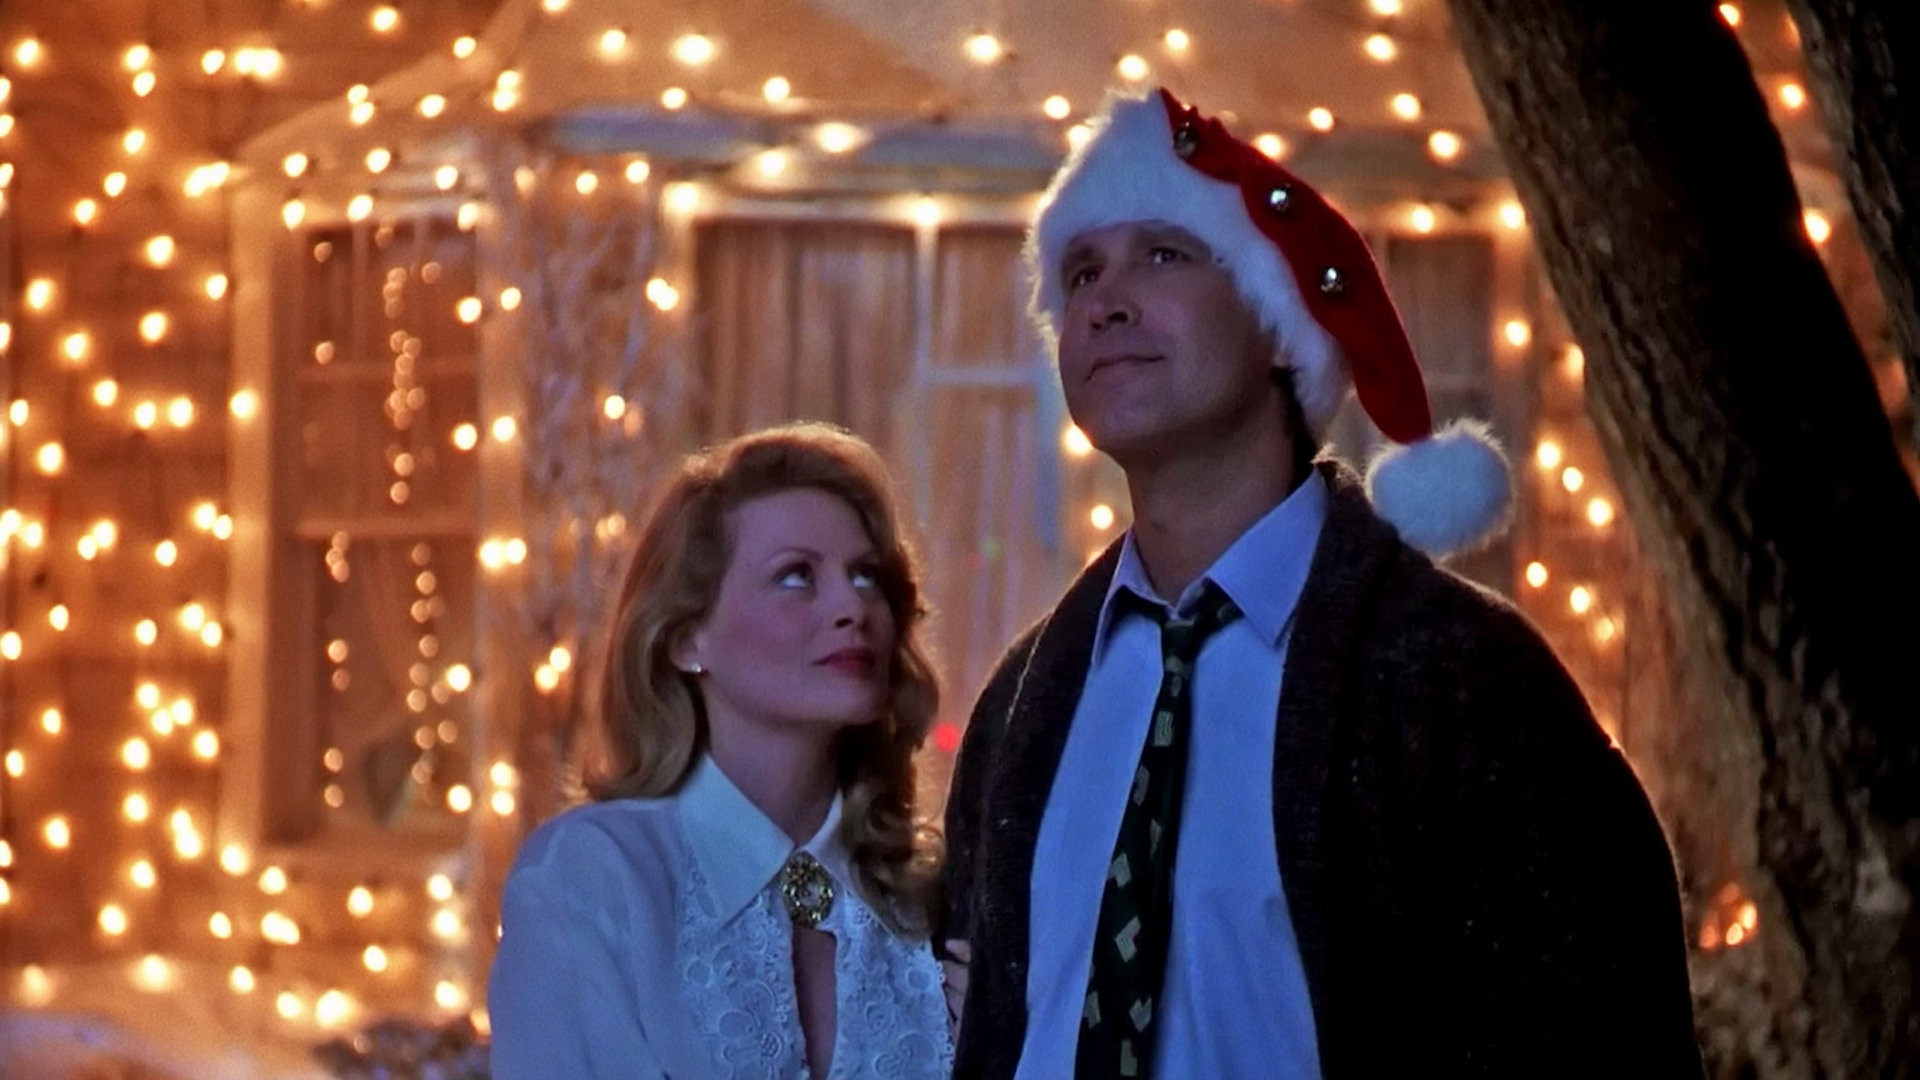 national lampoon's christmas vacation full hd wallpaper and